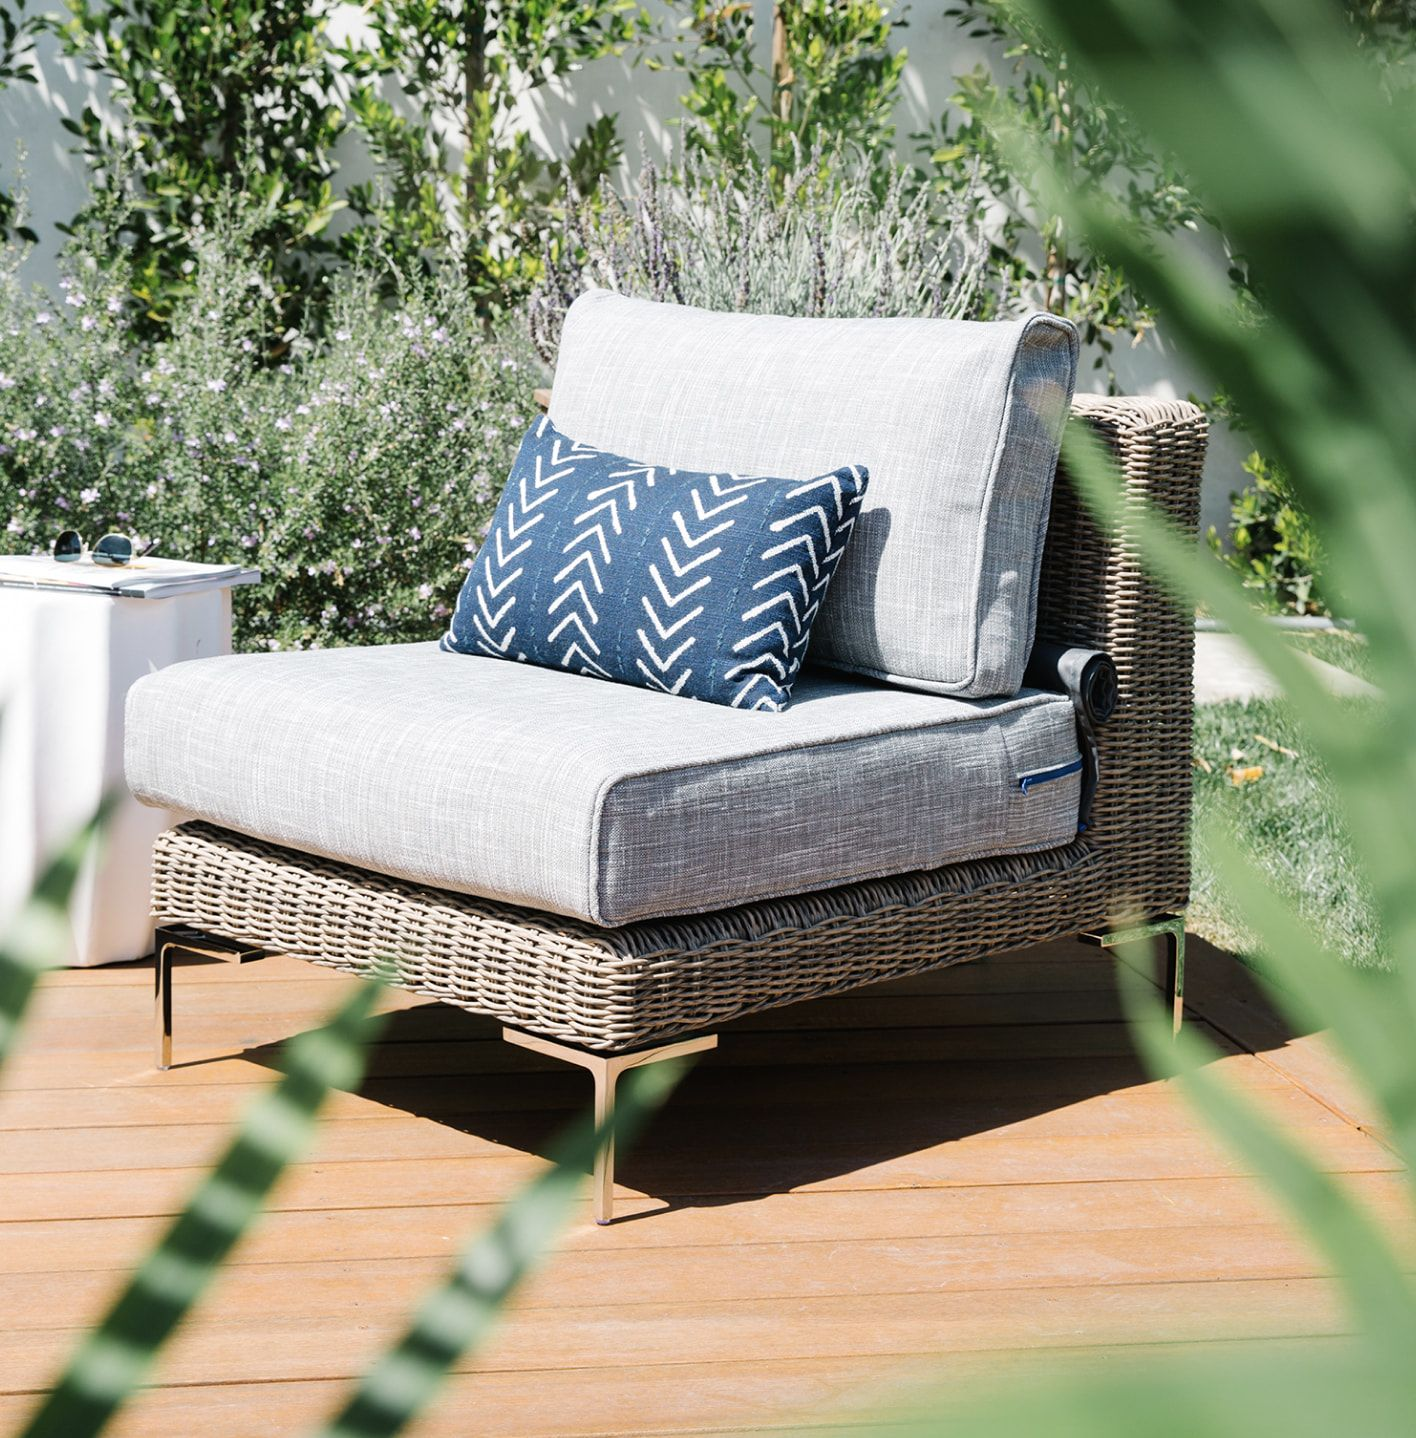 Outer The Perfect Outdoor Sofa Is Now Within Reach